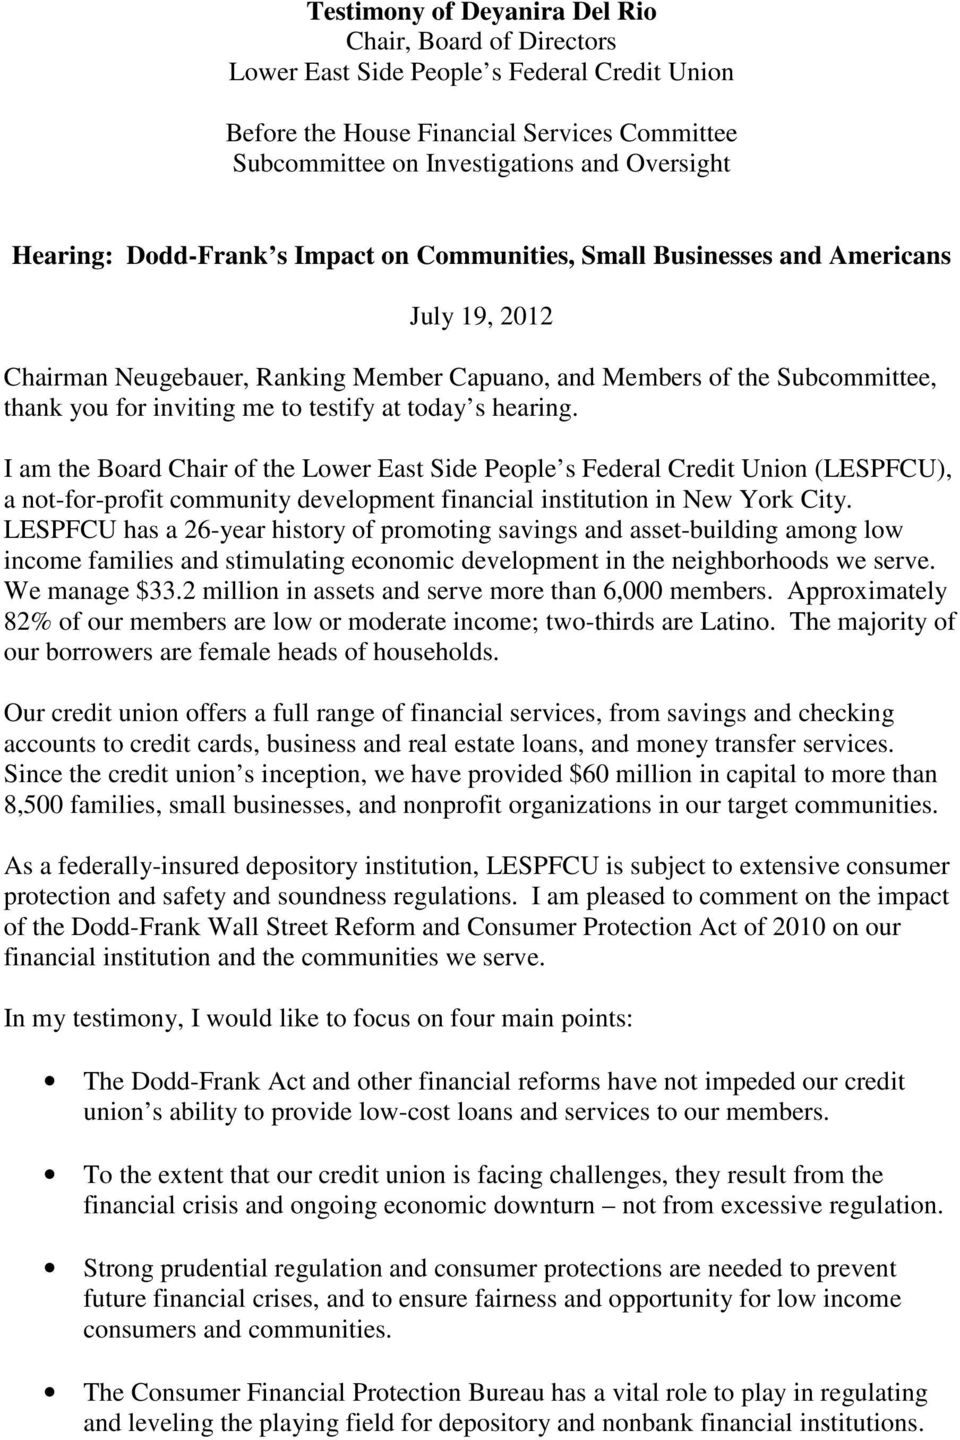 testify at today s hearing. I am the Board Chair of the Lower East Side People s Federal Credit Union (LESPFCU), a not-for-profit community development financial institution in New York City.